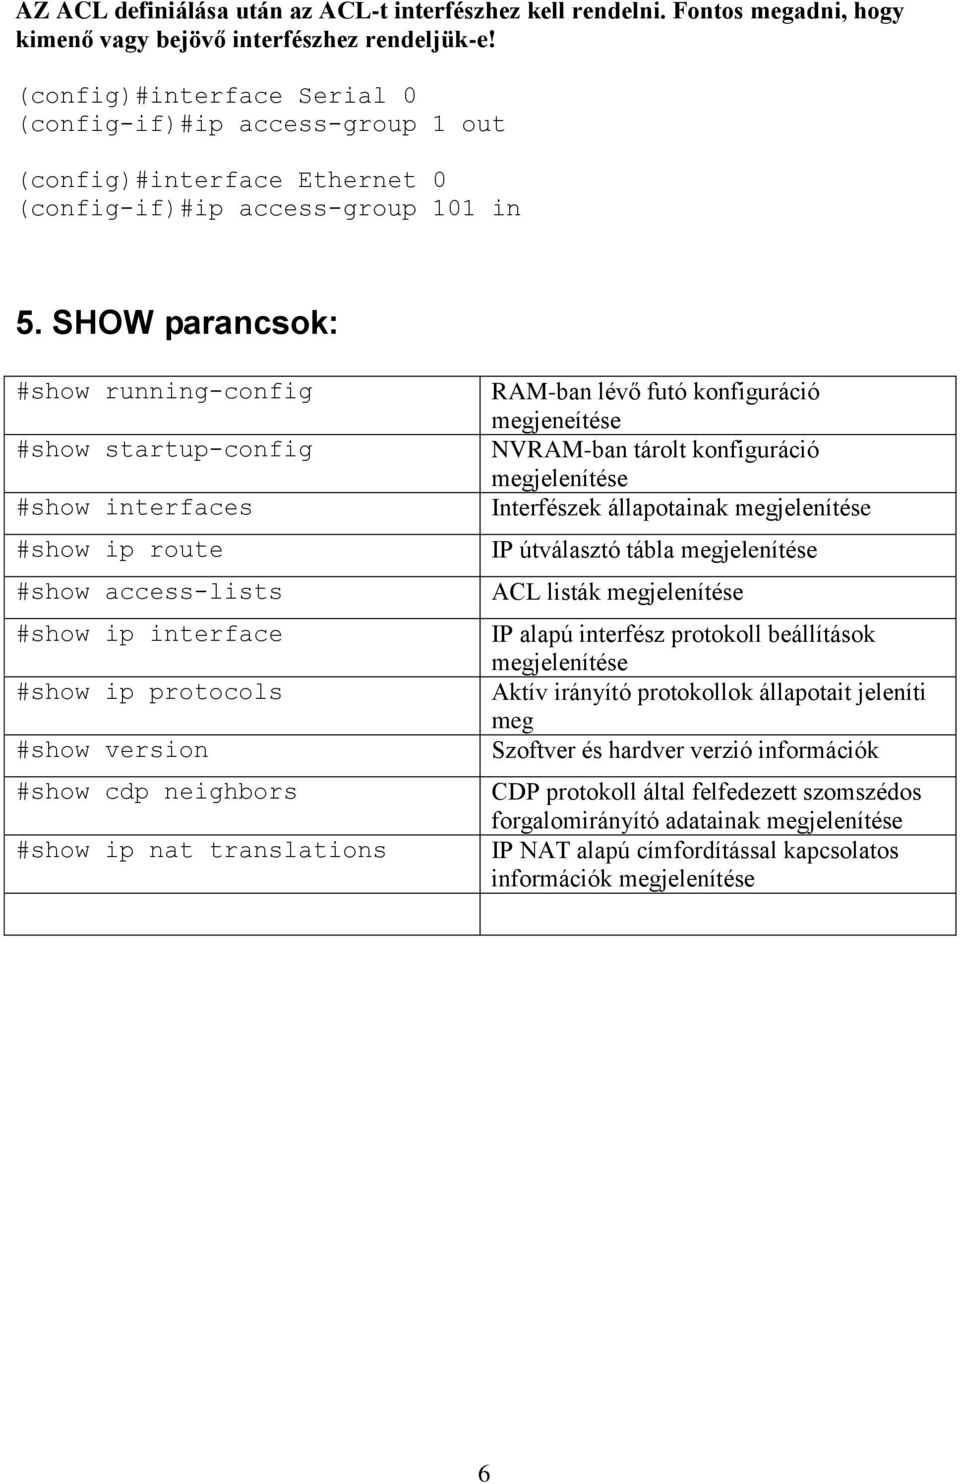 SHOW parancsok: #show running-config #show startup-config #show interfaces #show ip route #show access-lists #show ip interface #show ip protocols #show version #show cdp neighbors #show ip nat